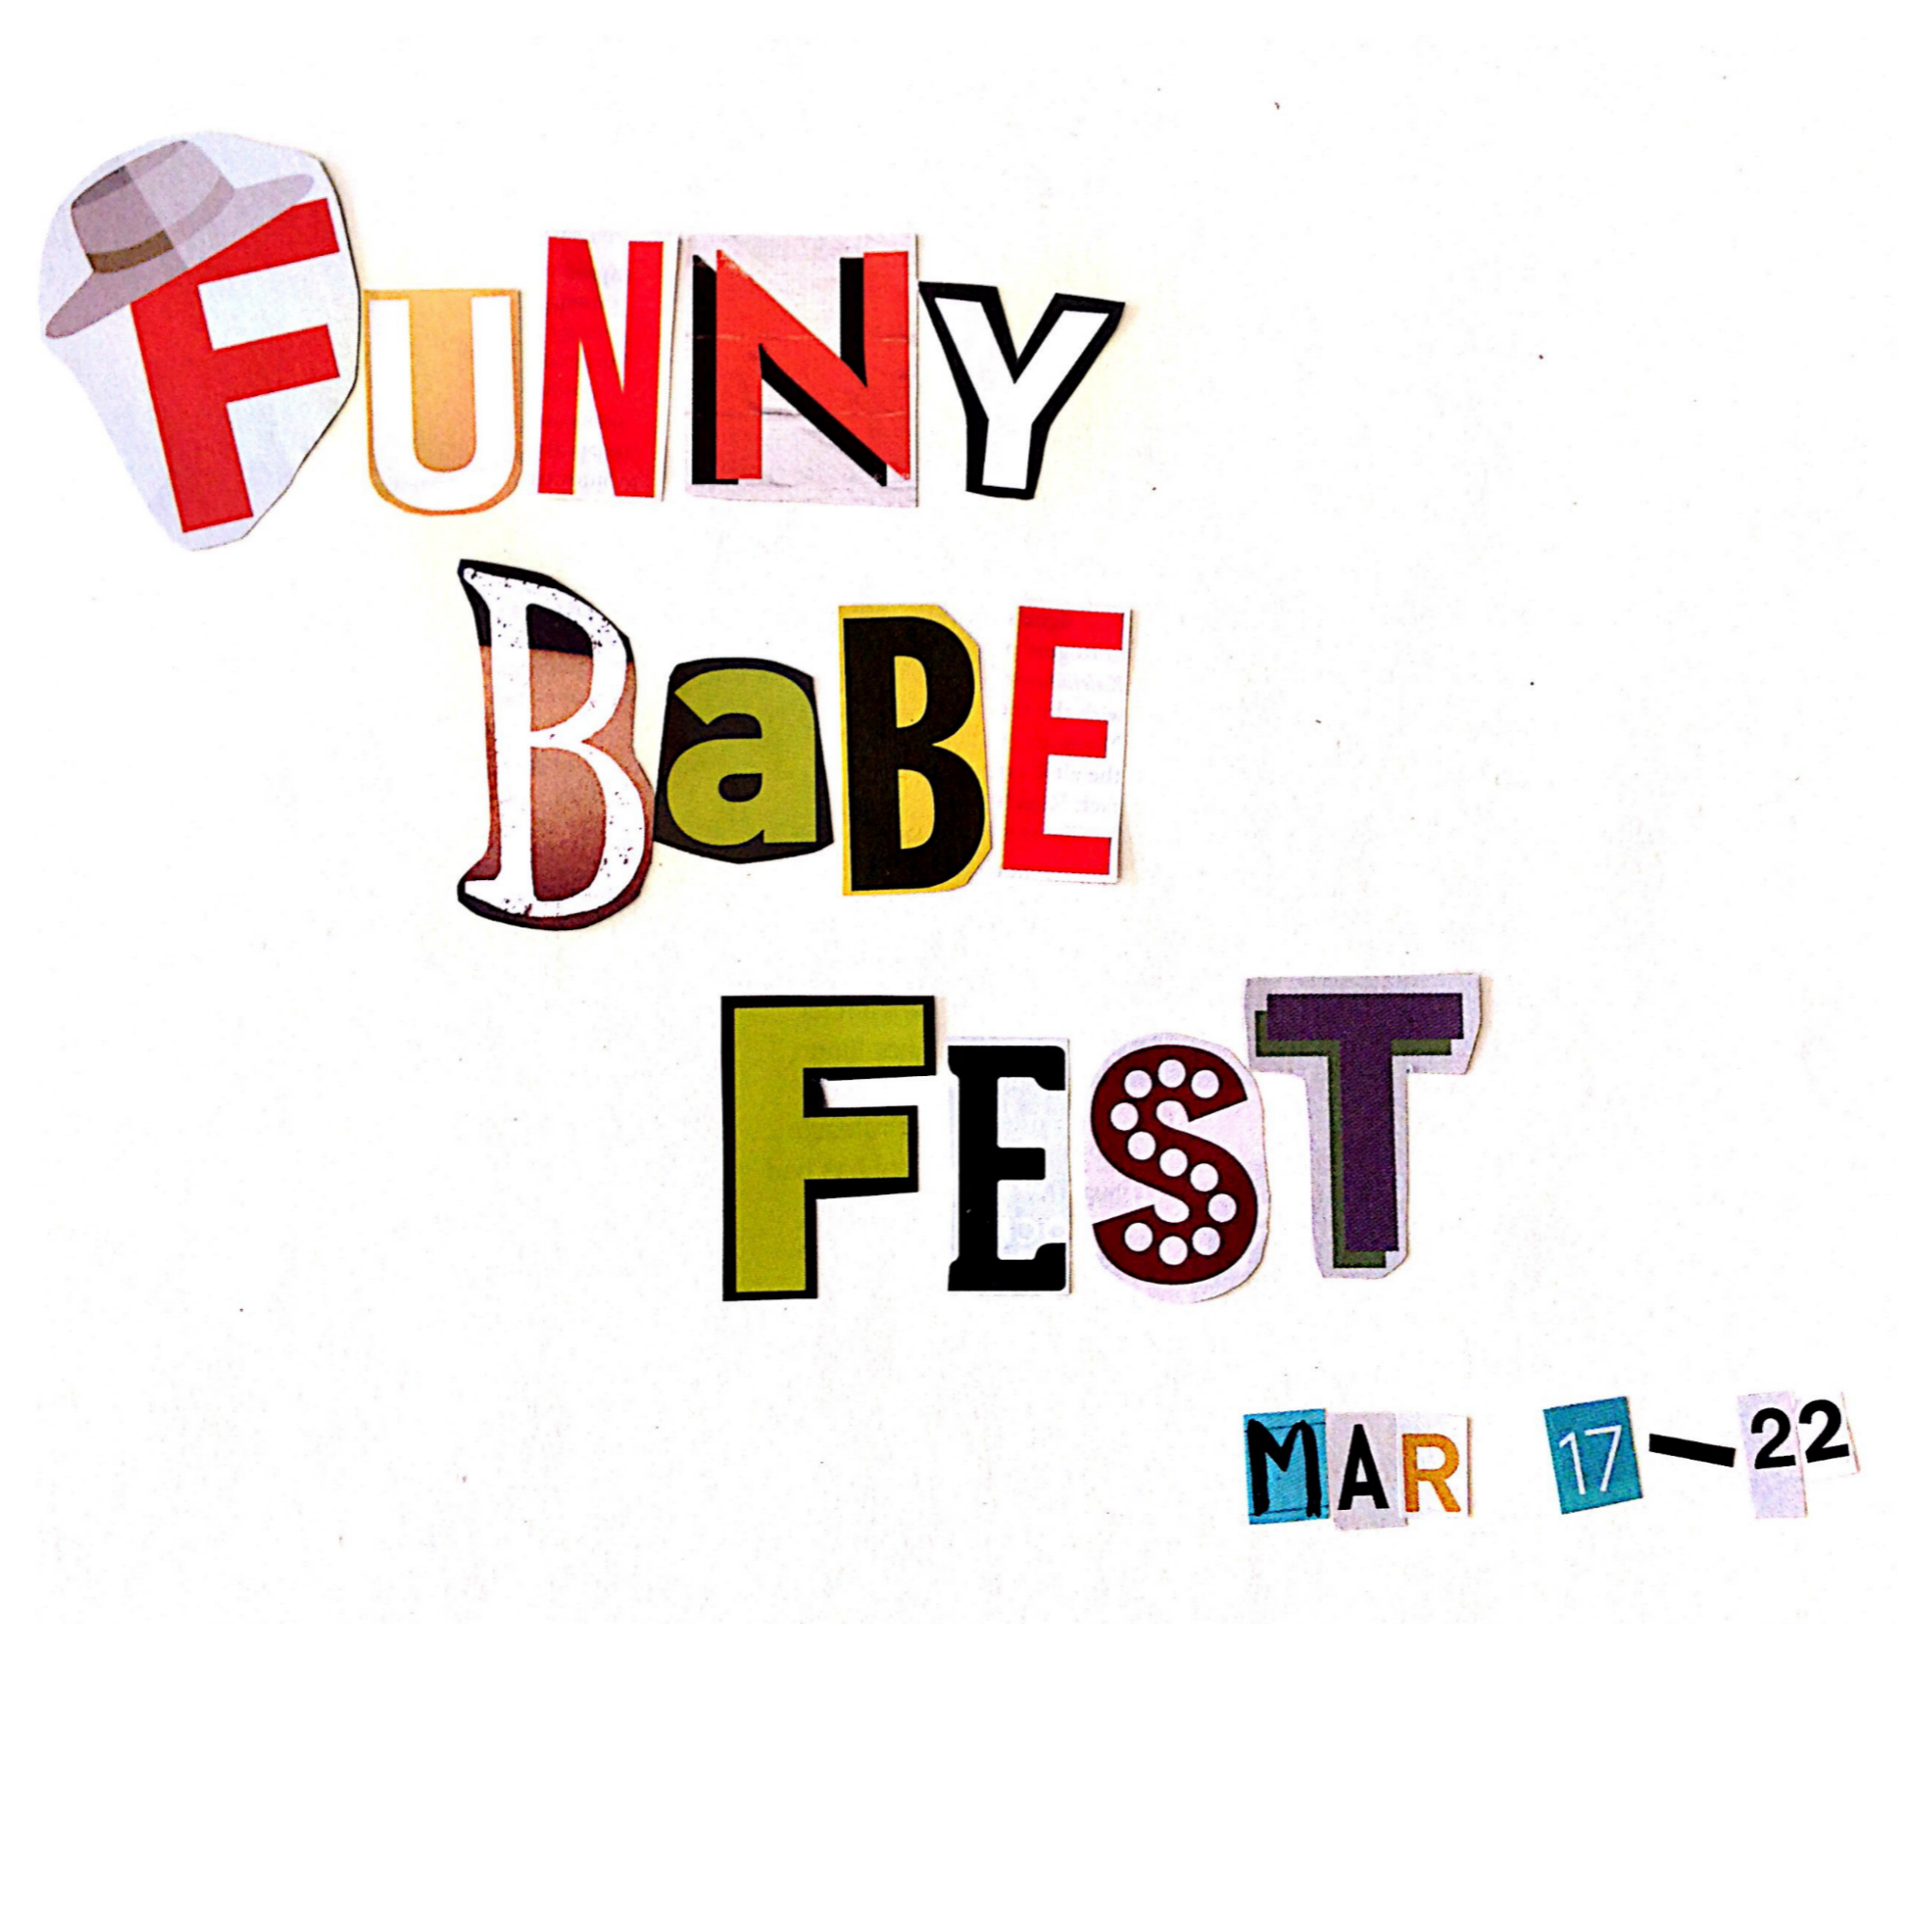 Funny Babe Fest: 17-22 March at the Butterfly Club